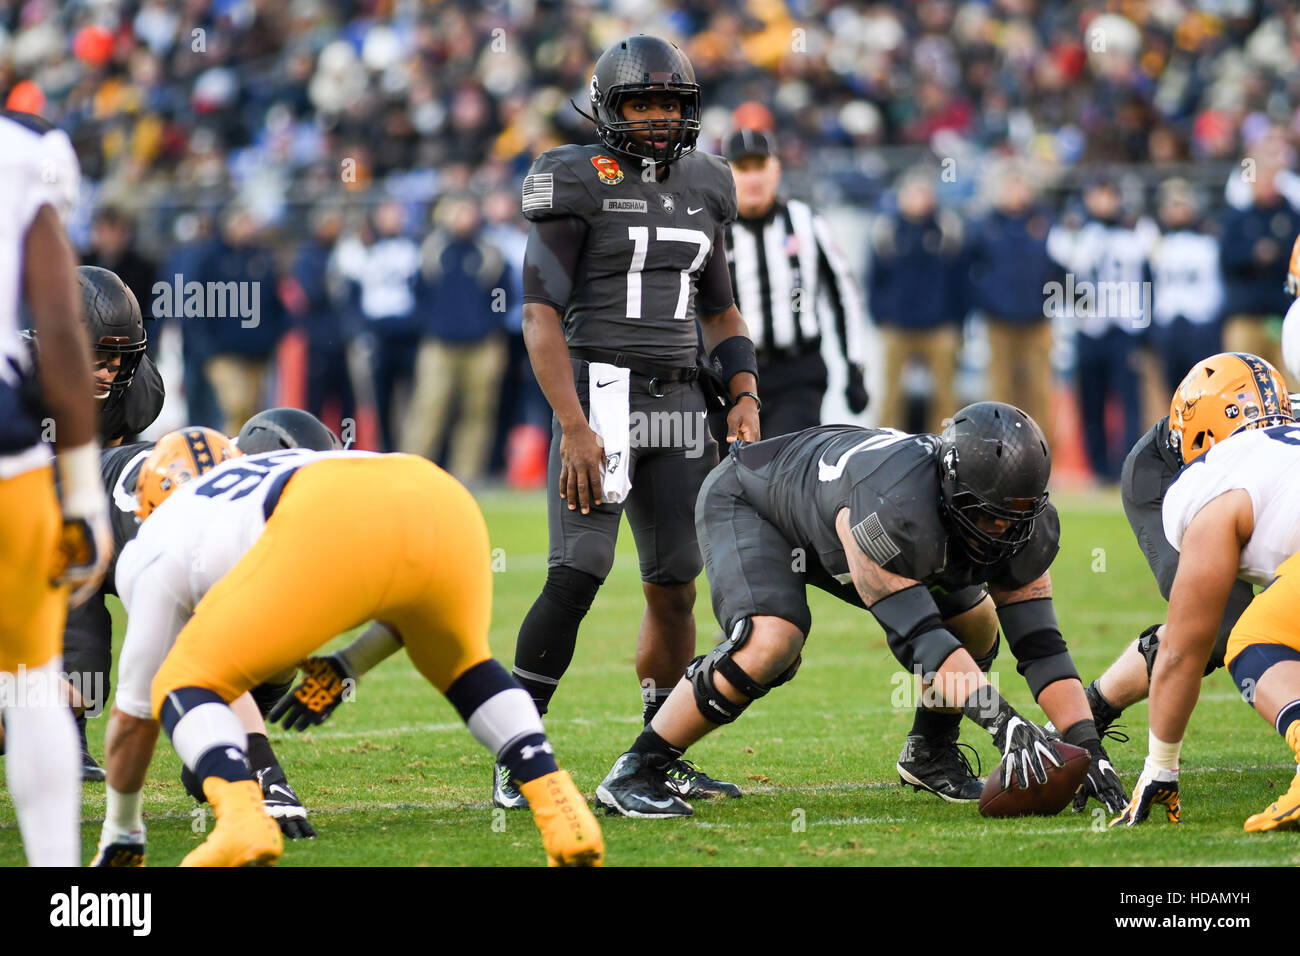 Baltimore, Maryland, USA. 10th Dec, 2016. Army's QB, AHMAD BRADSHAW, in action during the game at M&T Bank - Stock Image